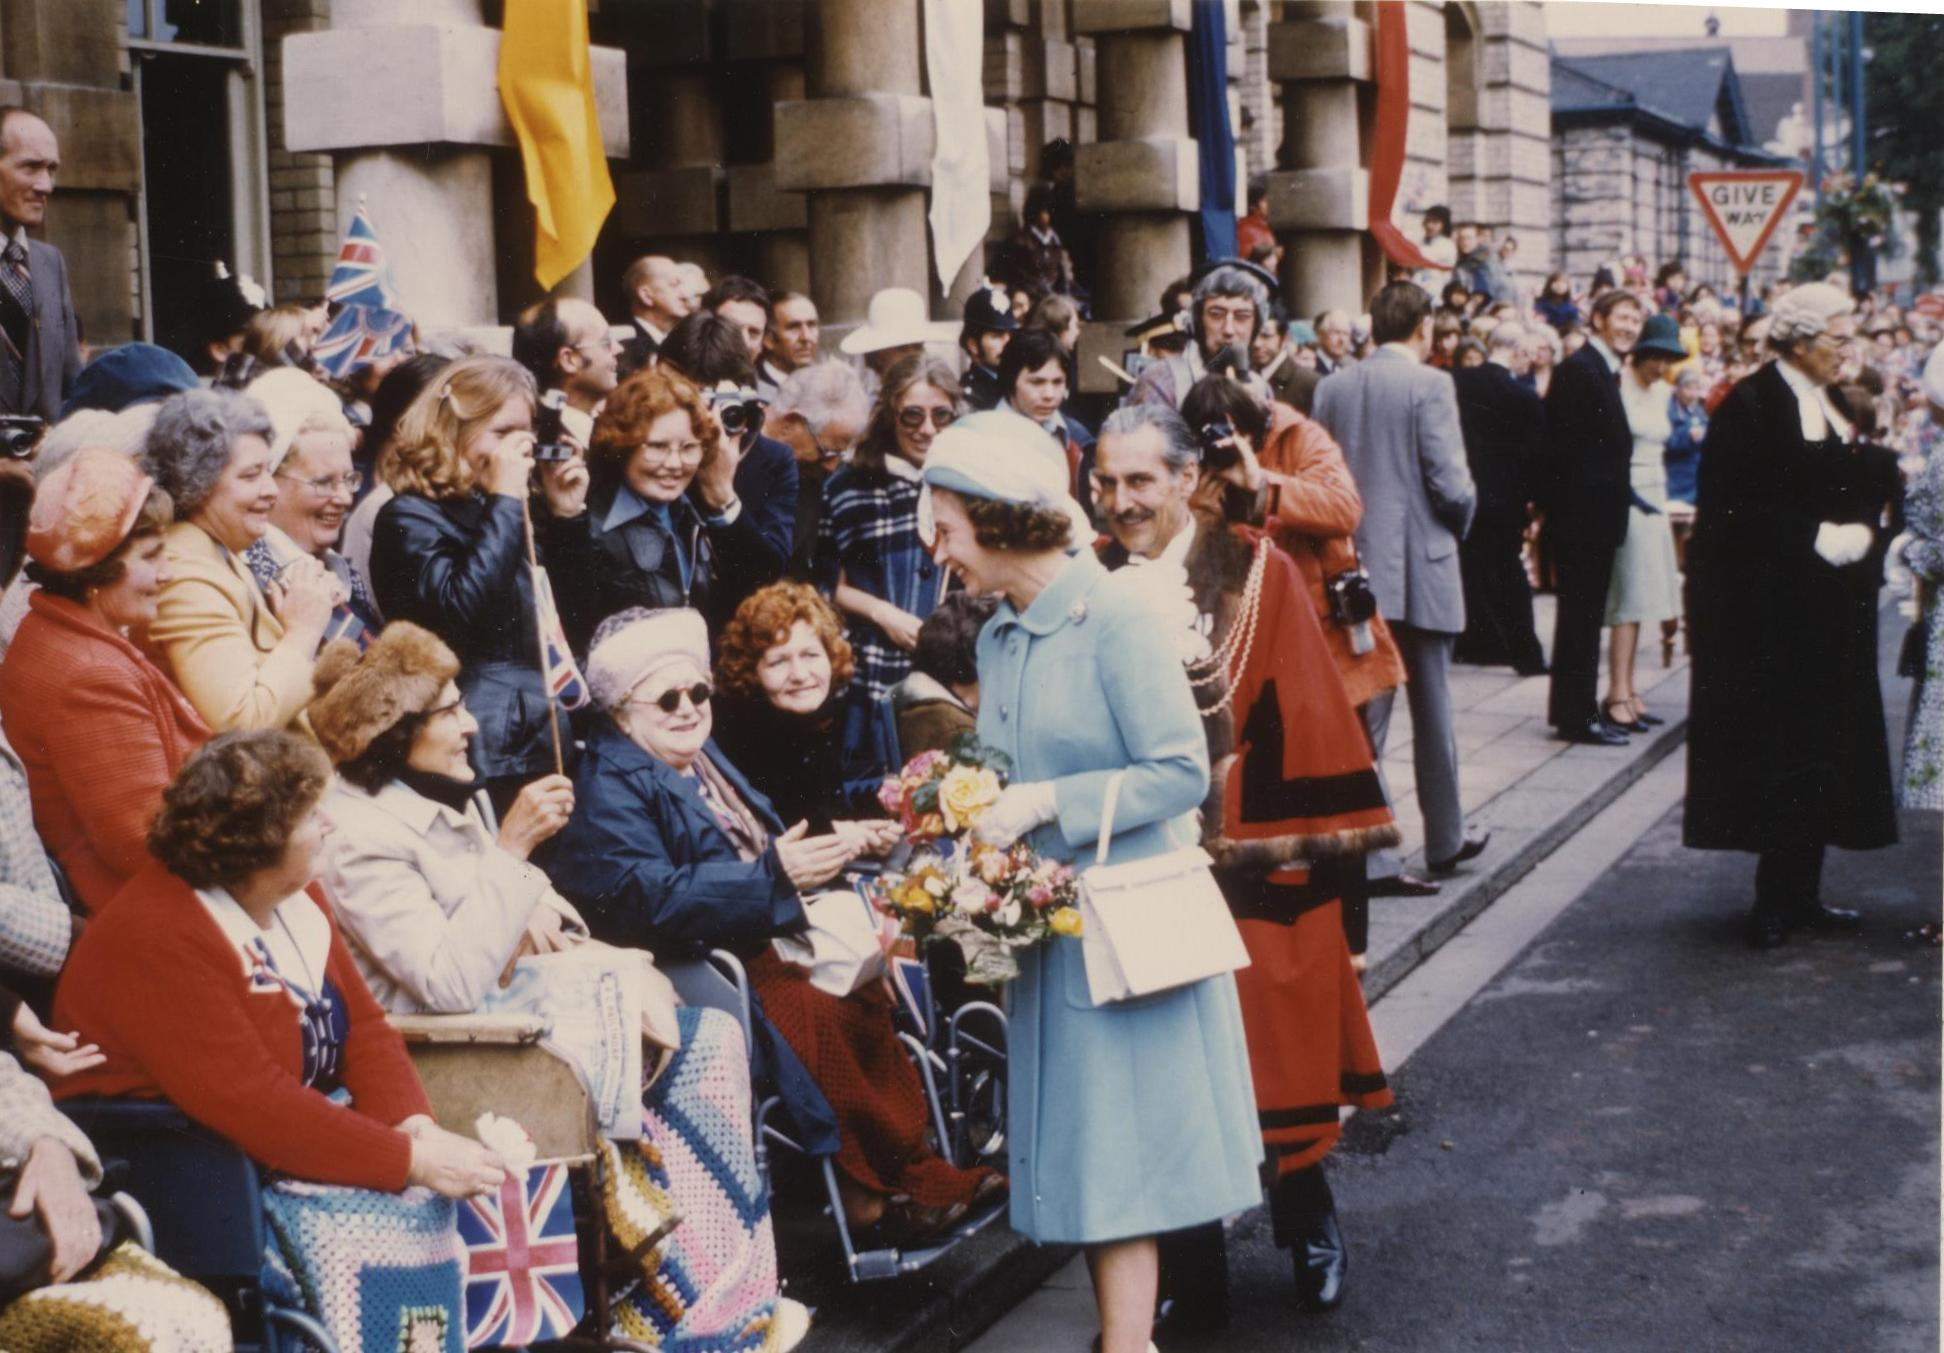 Walkabout by Her Majesty The Queen, Town Hall Square, Grimsby 12th July 1977 (archive ref CCHU-4-1-9-2)